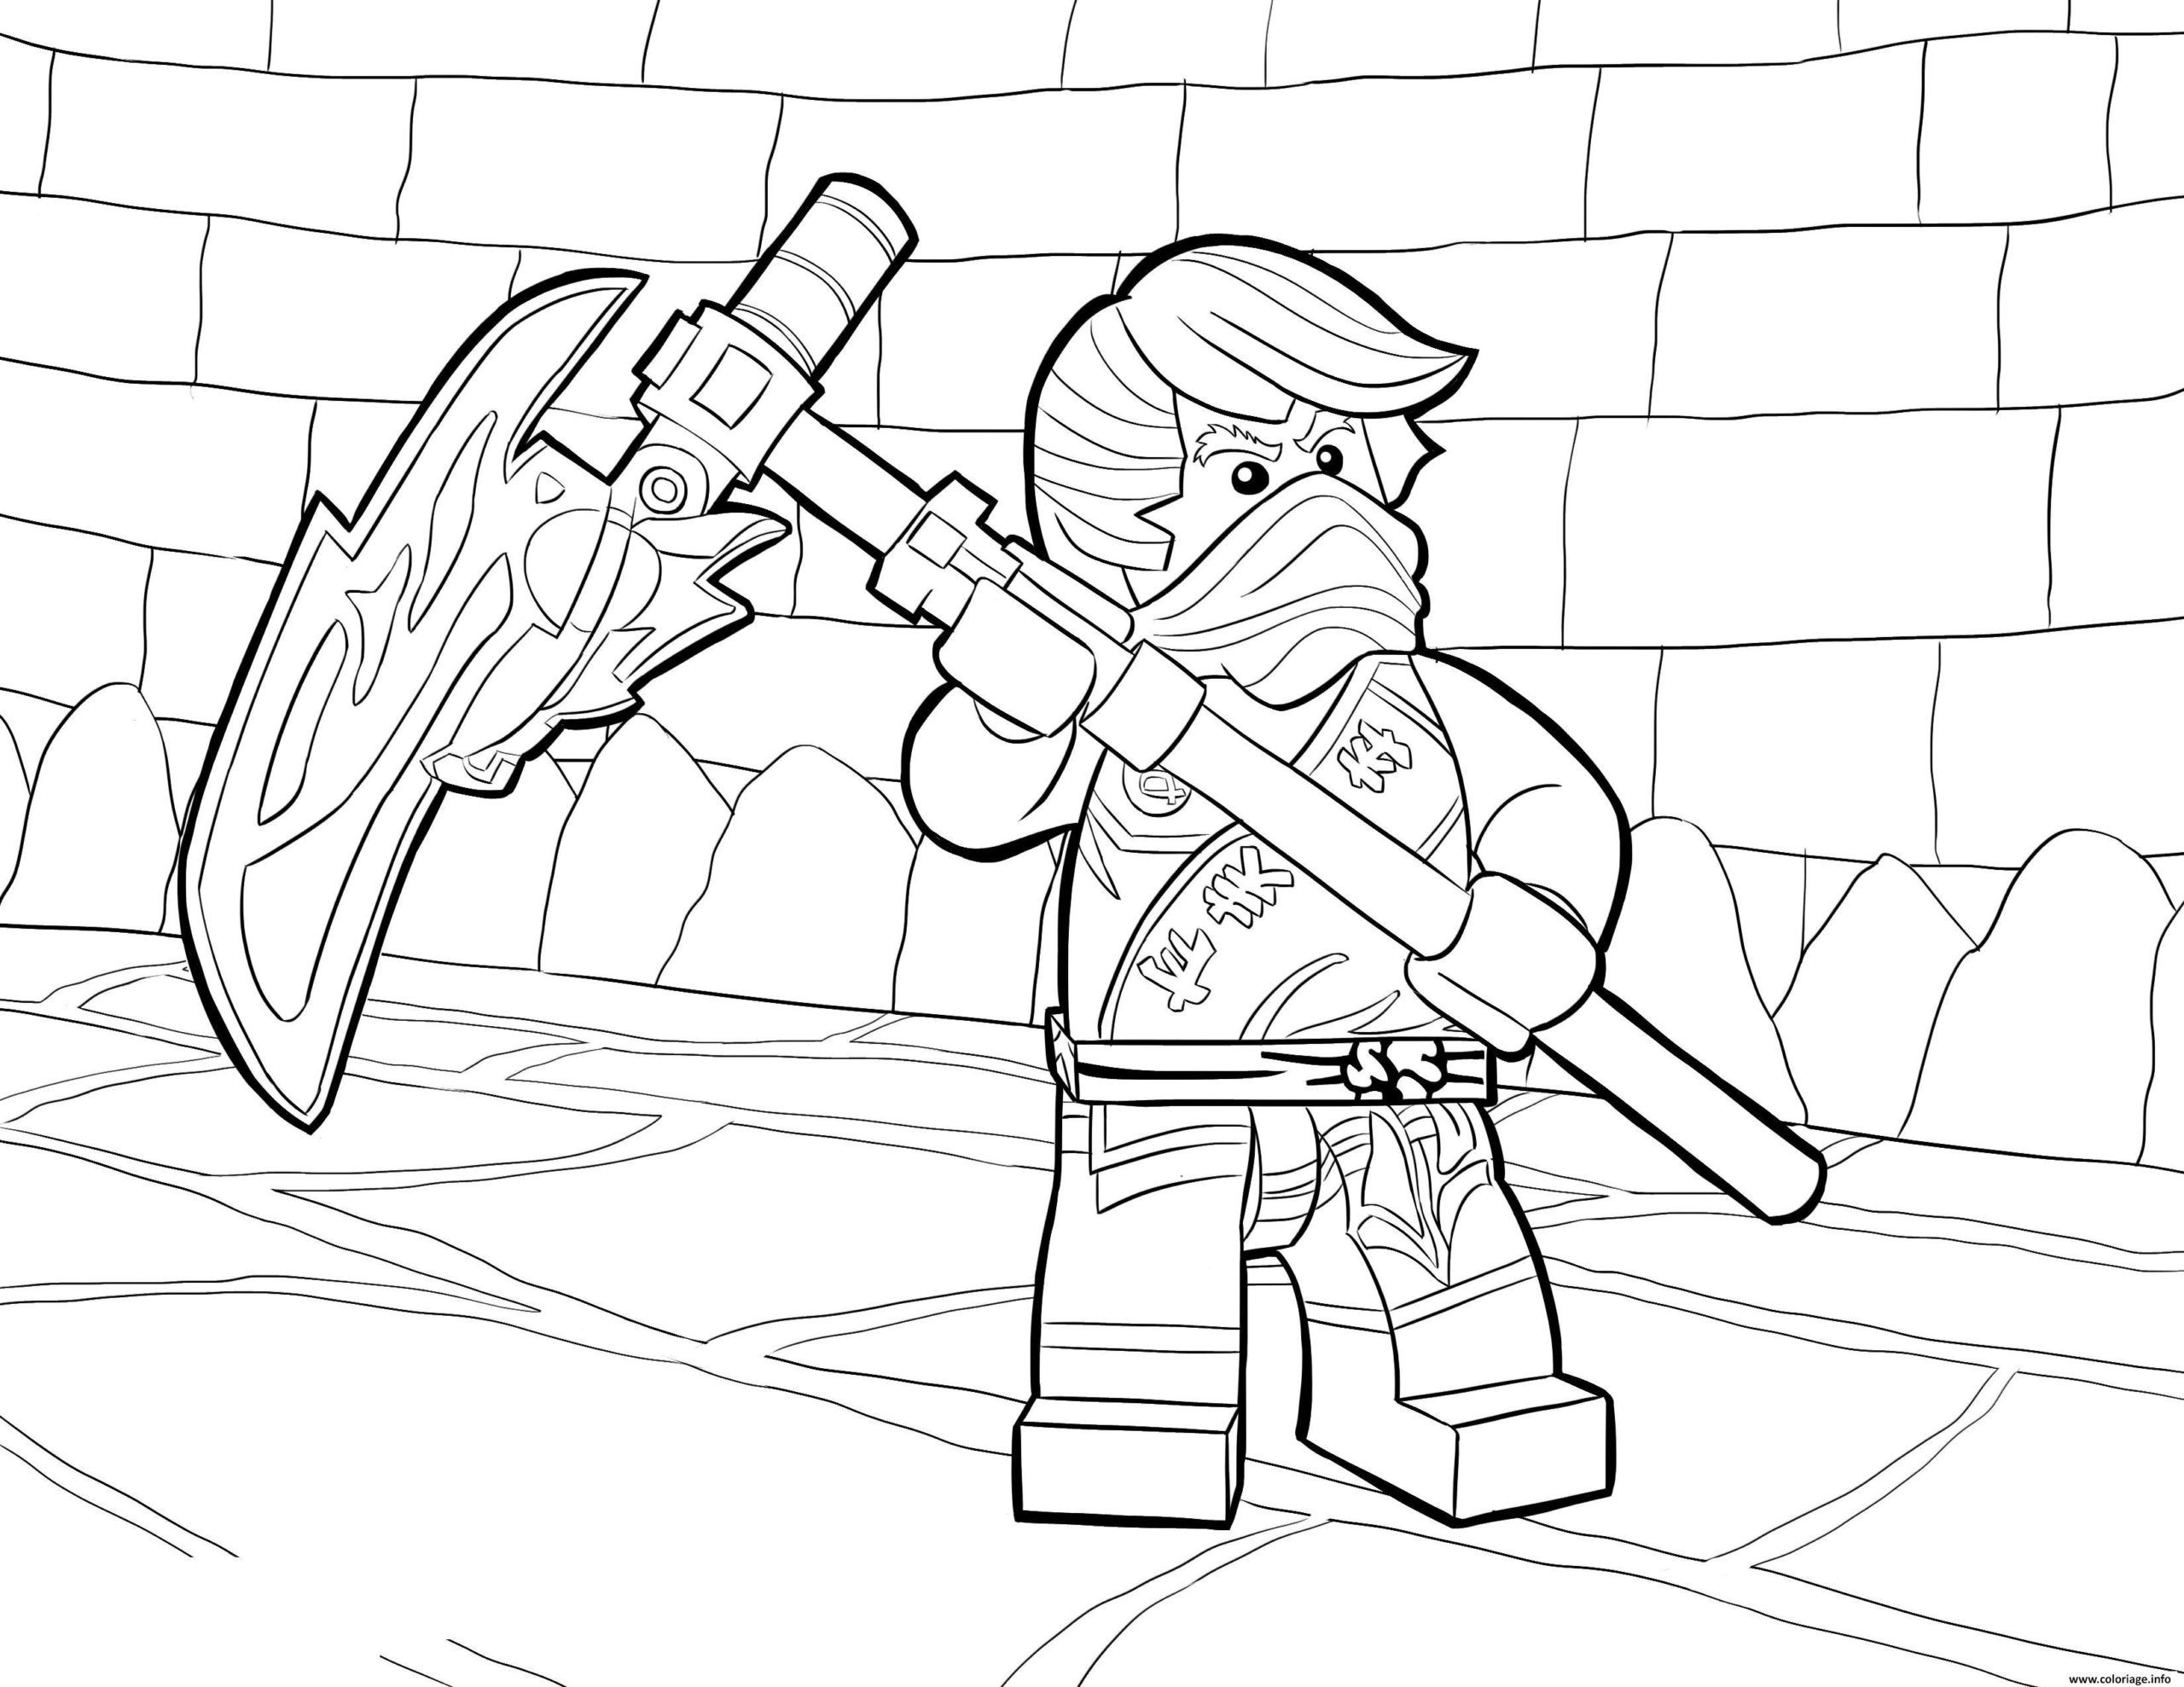 16 Coloriage A Imprimer Ninjago In 2020 Ninjago Coloring Pages Lego Coloring Pages Coloring Books